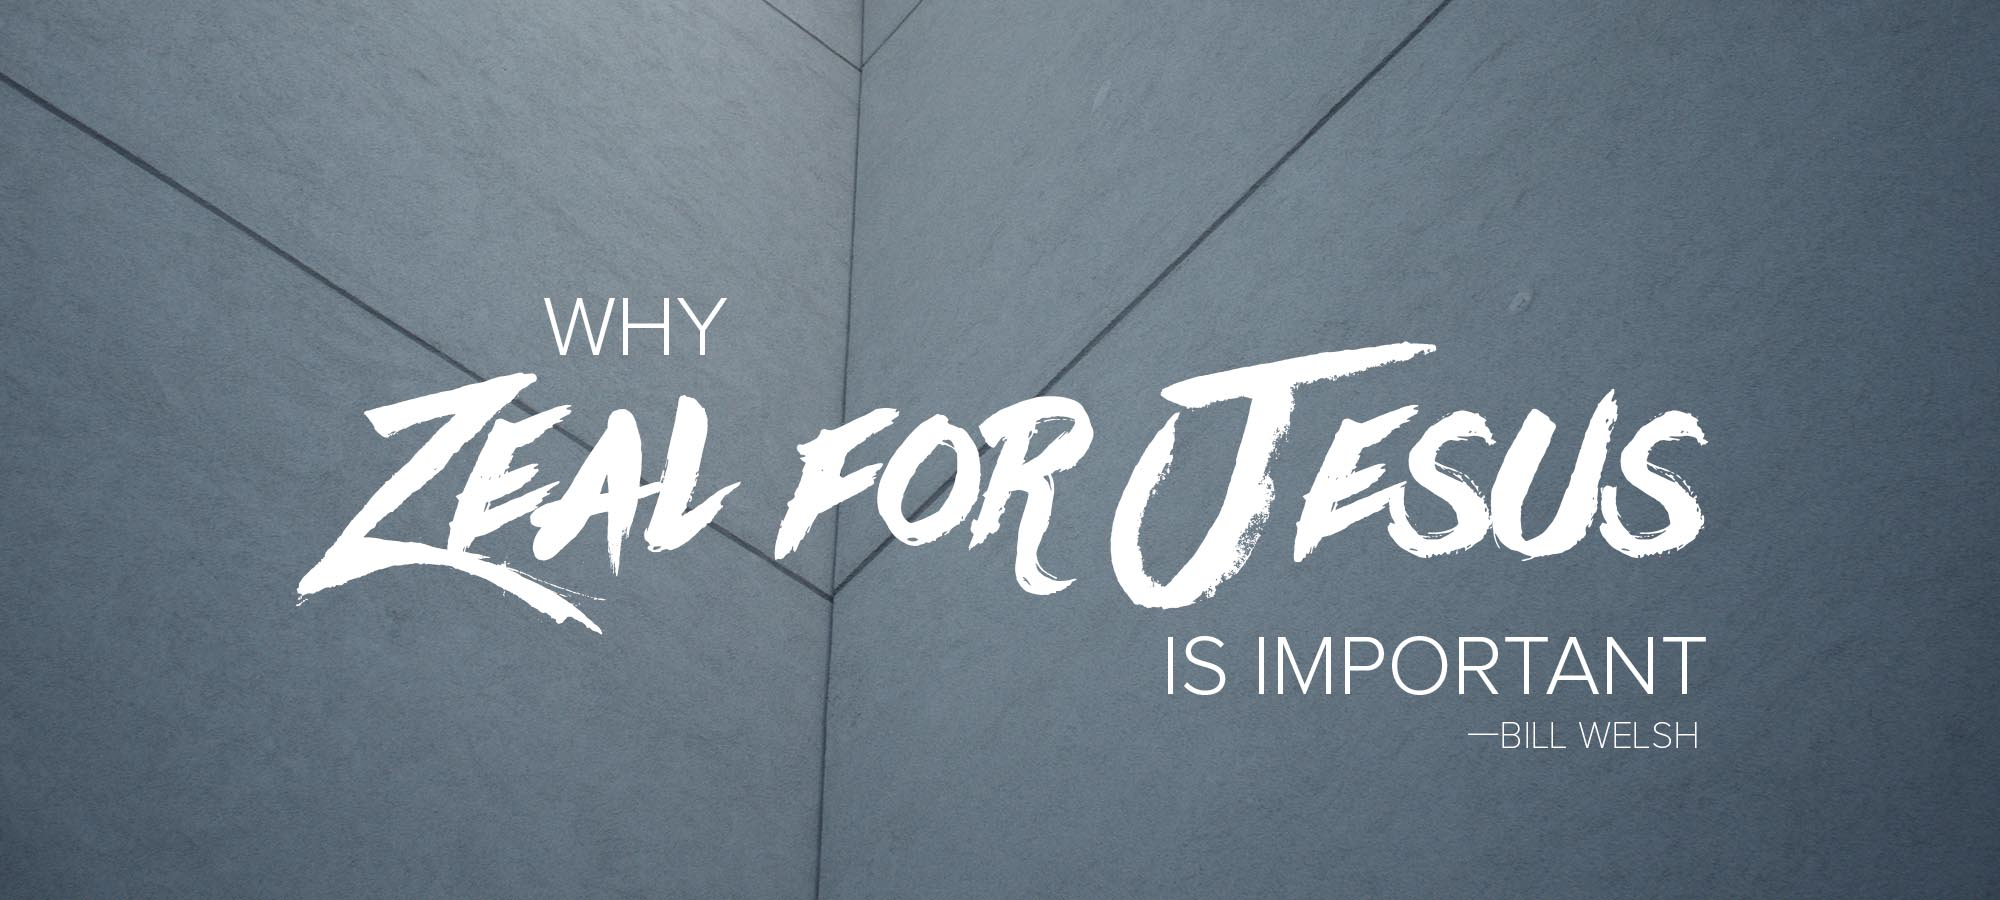 Why Zeal for Jesus is Important